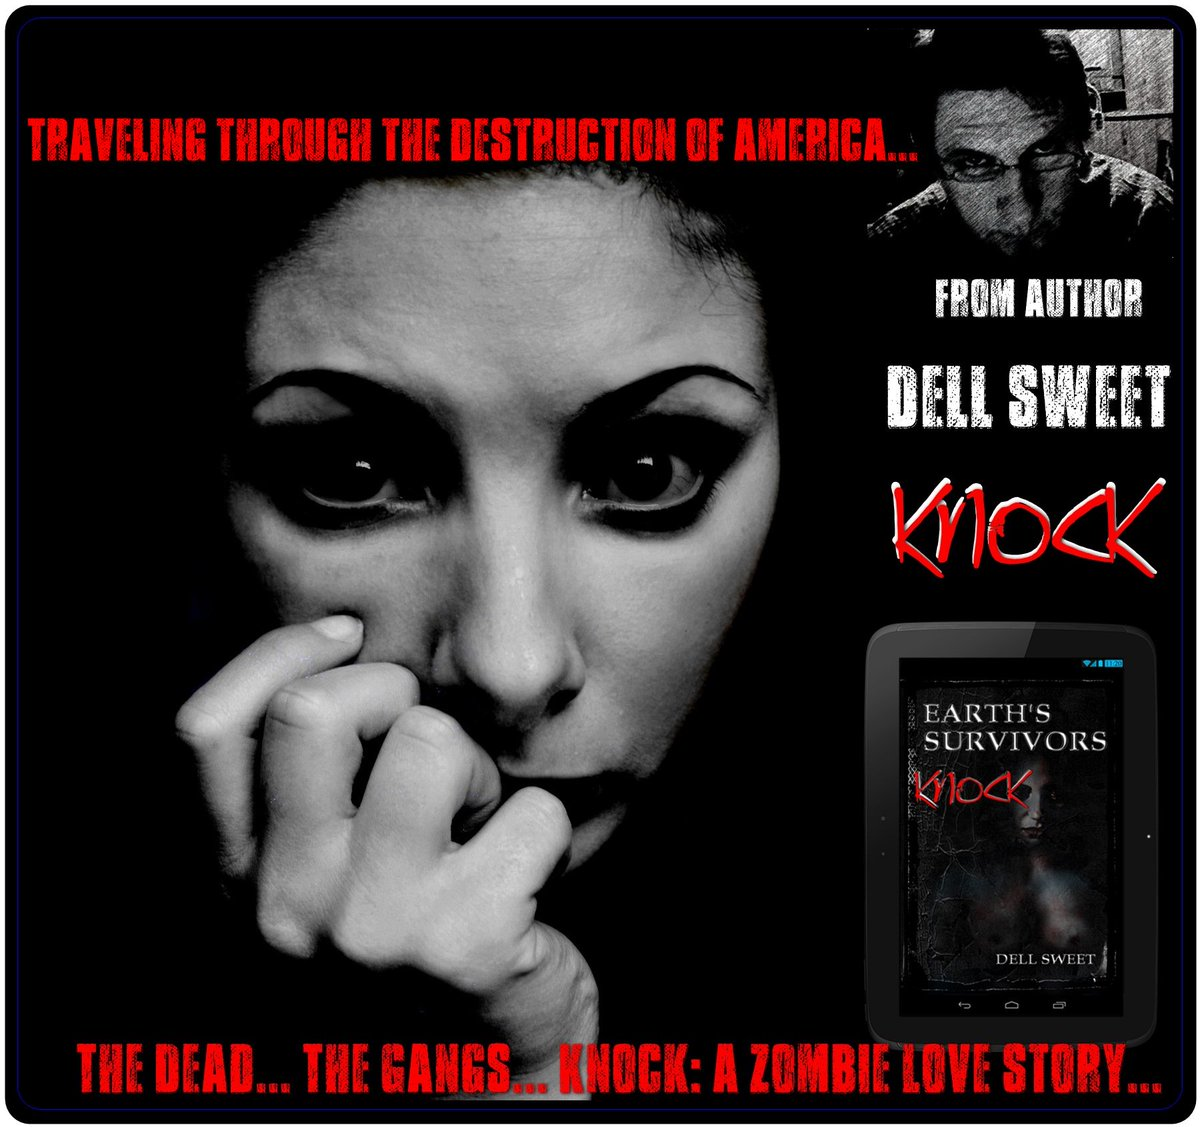 Earth&#39;s Survivors Knock. Follow across a devastated America as the survivors look for safety #iTunes #Horror  https:// goo.gl/IHF4w9  &nbsp;  <br>http://pic.twitter.com/0JHJ0ZvTvj